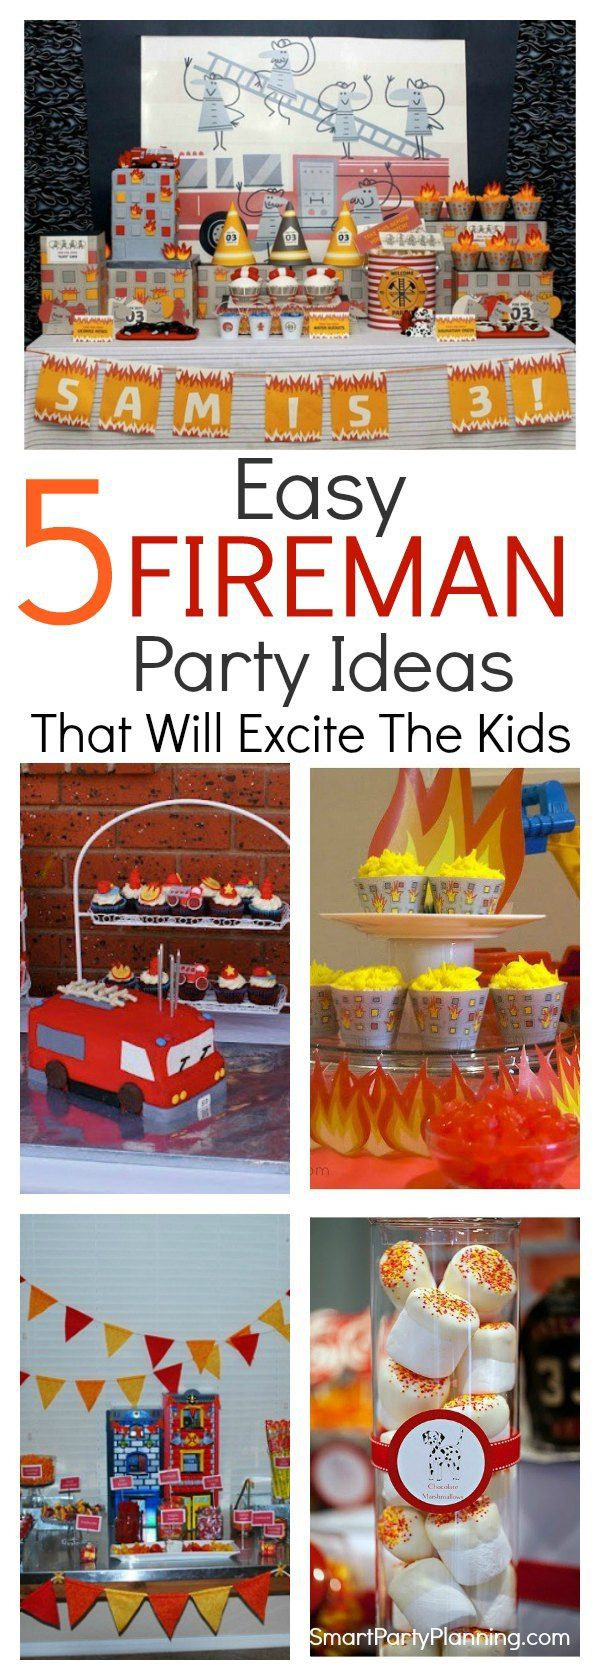 Awesome fireman birthday party ideas that the kids will love.  There are ideas for food, decorations, printable's and more. This is a party theme where there is a whole load of fun to be had and the fire truck cakes are pretty spectacular! #Firemanbirthdayparty #Birthday #Boys #Fun